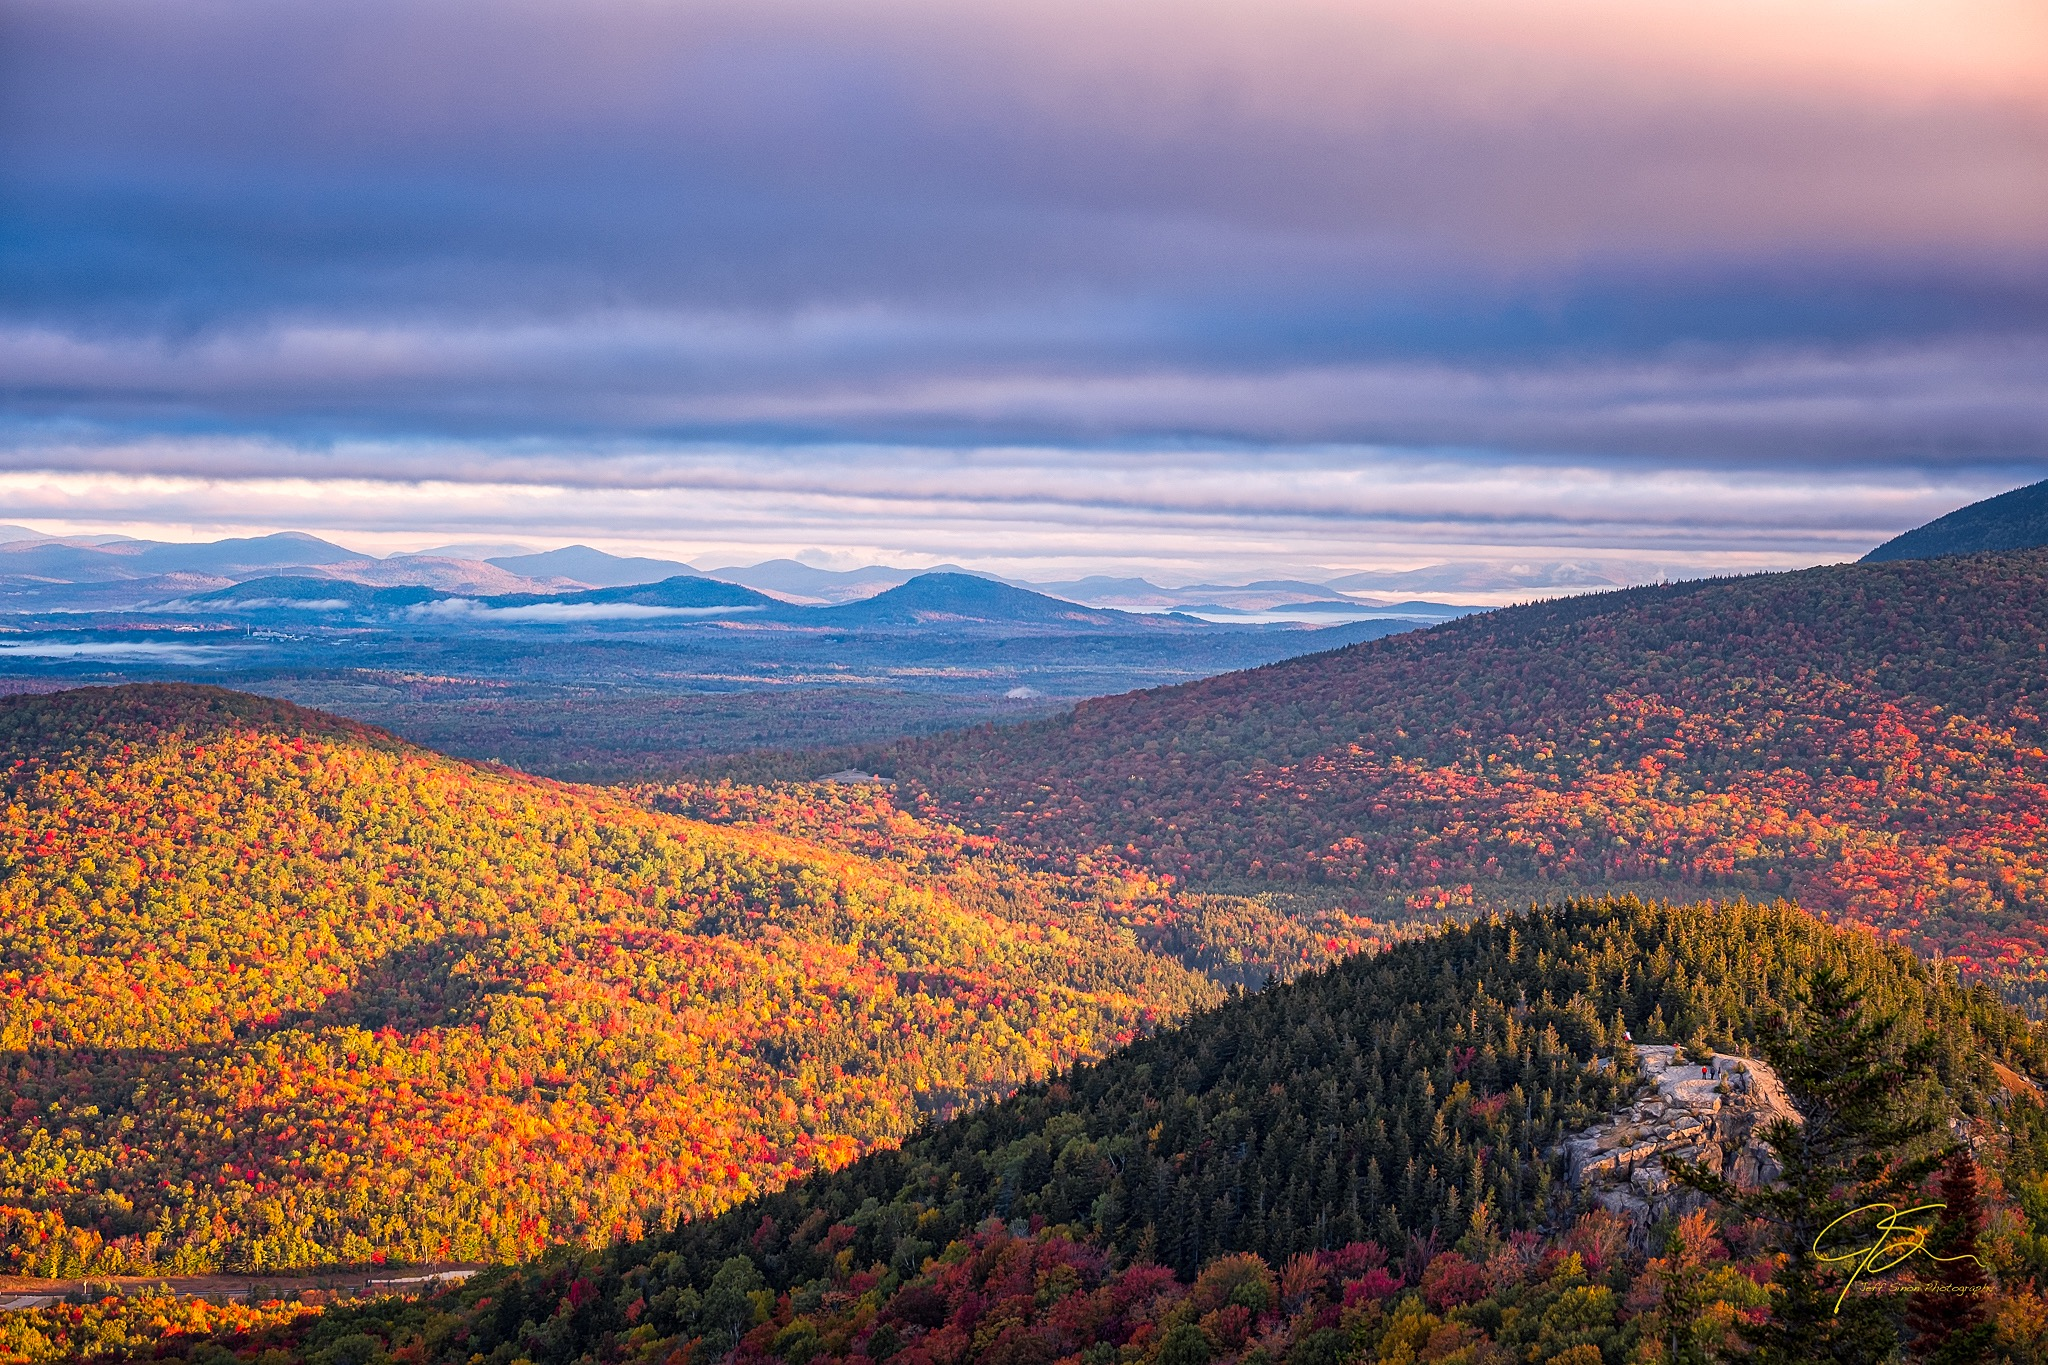 Looking north from the summit of New Hampshire's Middle Sugarloaf Mountain, expansive mountain views stretch toward the horizon. The partially exposed summit of North Sugarloaf can be seen in the lower right corner of the image.